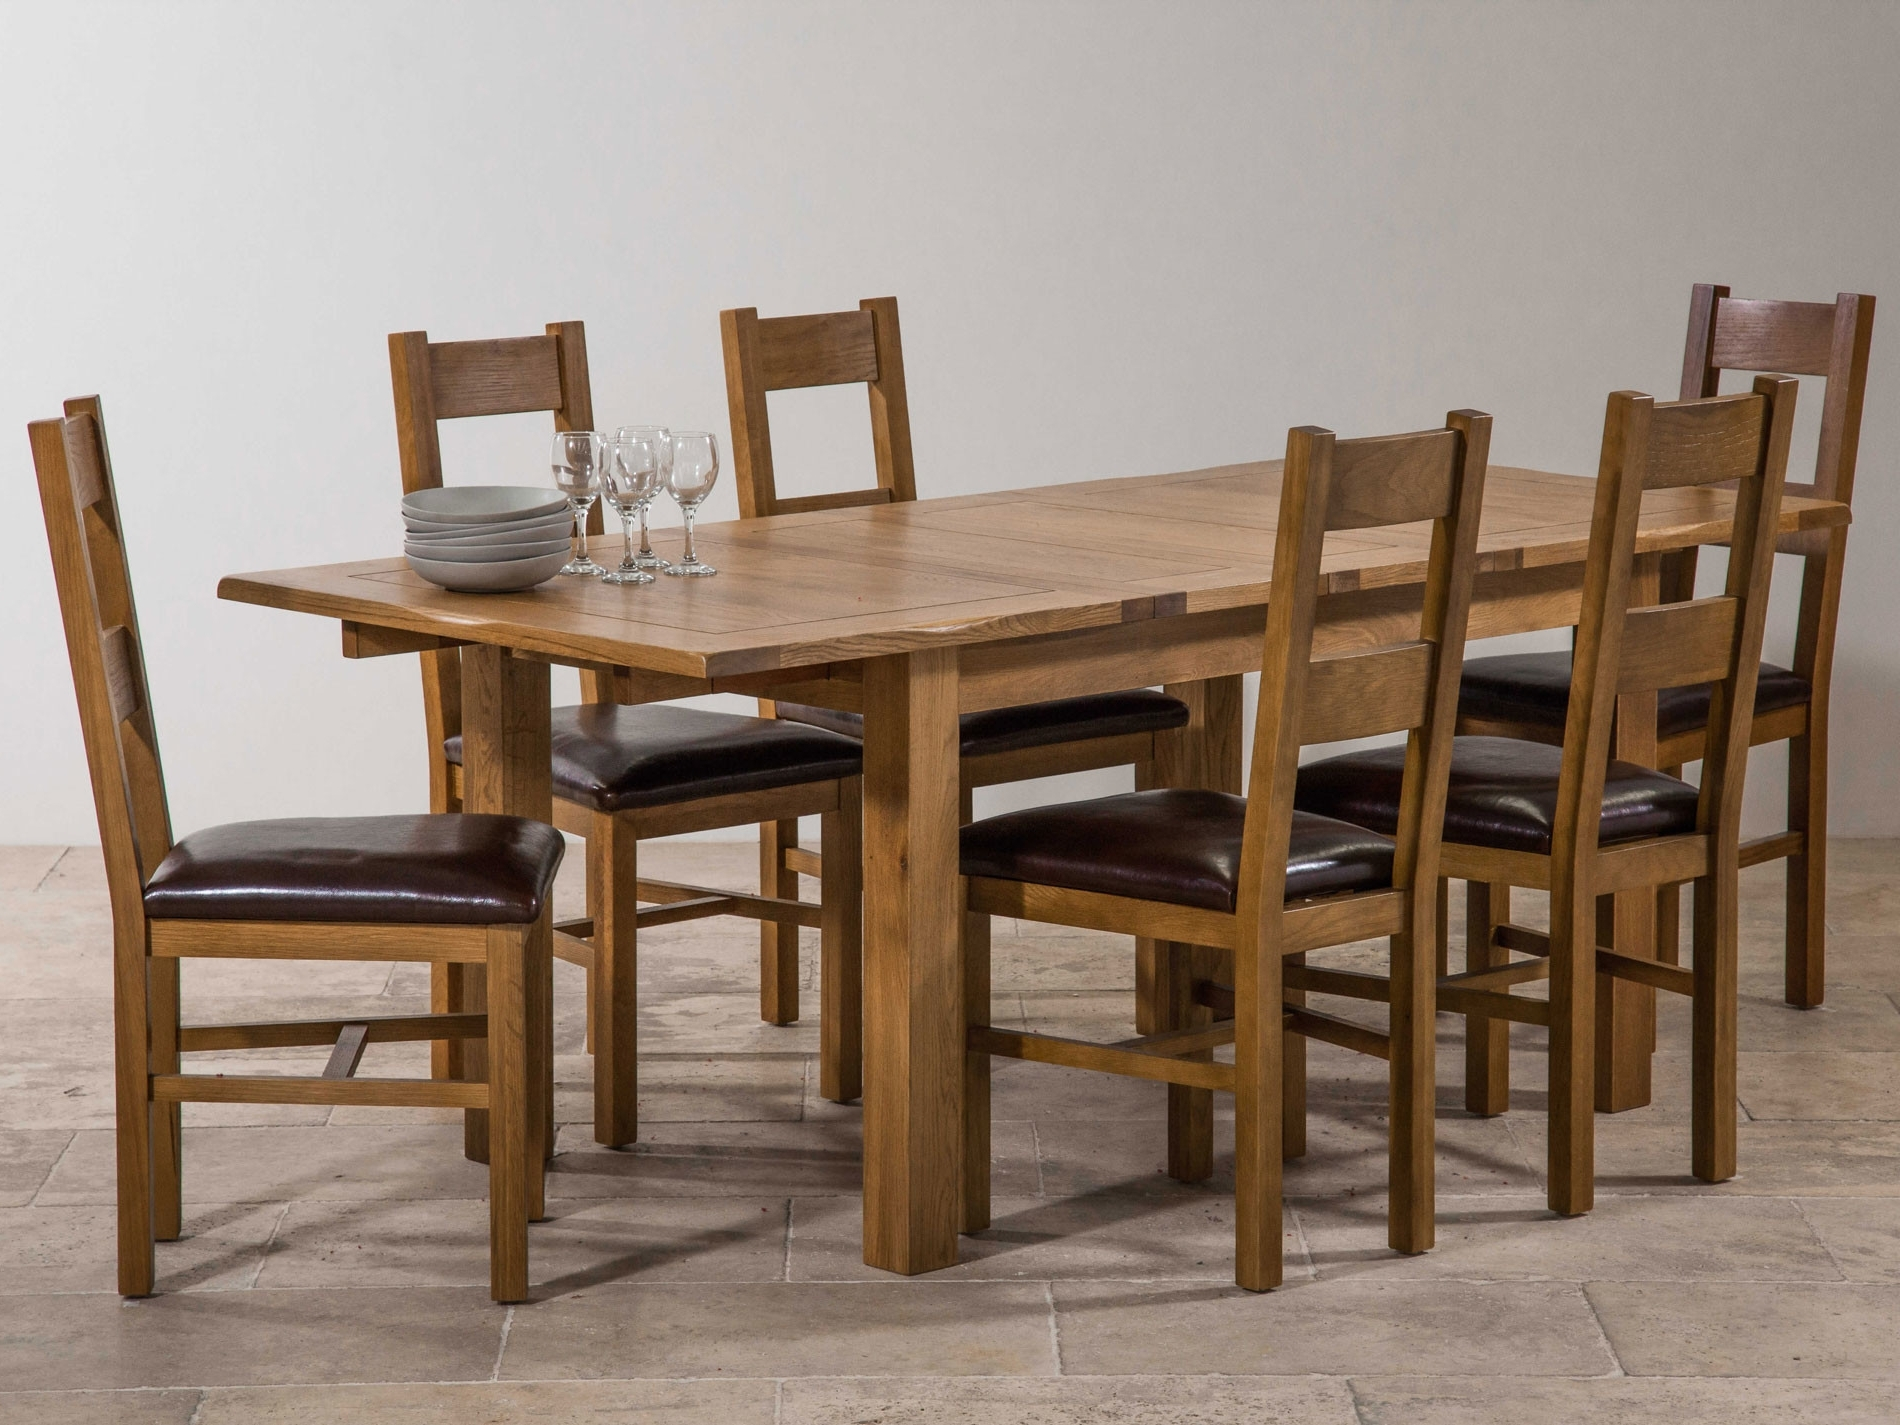 Widely Used Enchanting Extendable Dining Table 3Ft Dining Table Sets On White Inside Extendable Dining Table Sets (View 25 of 25)